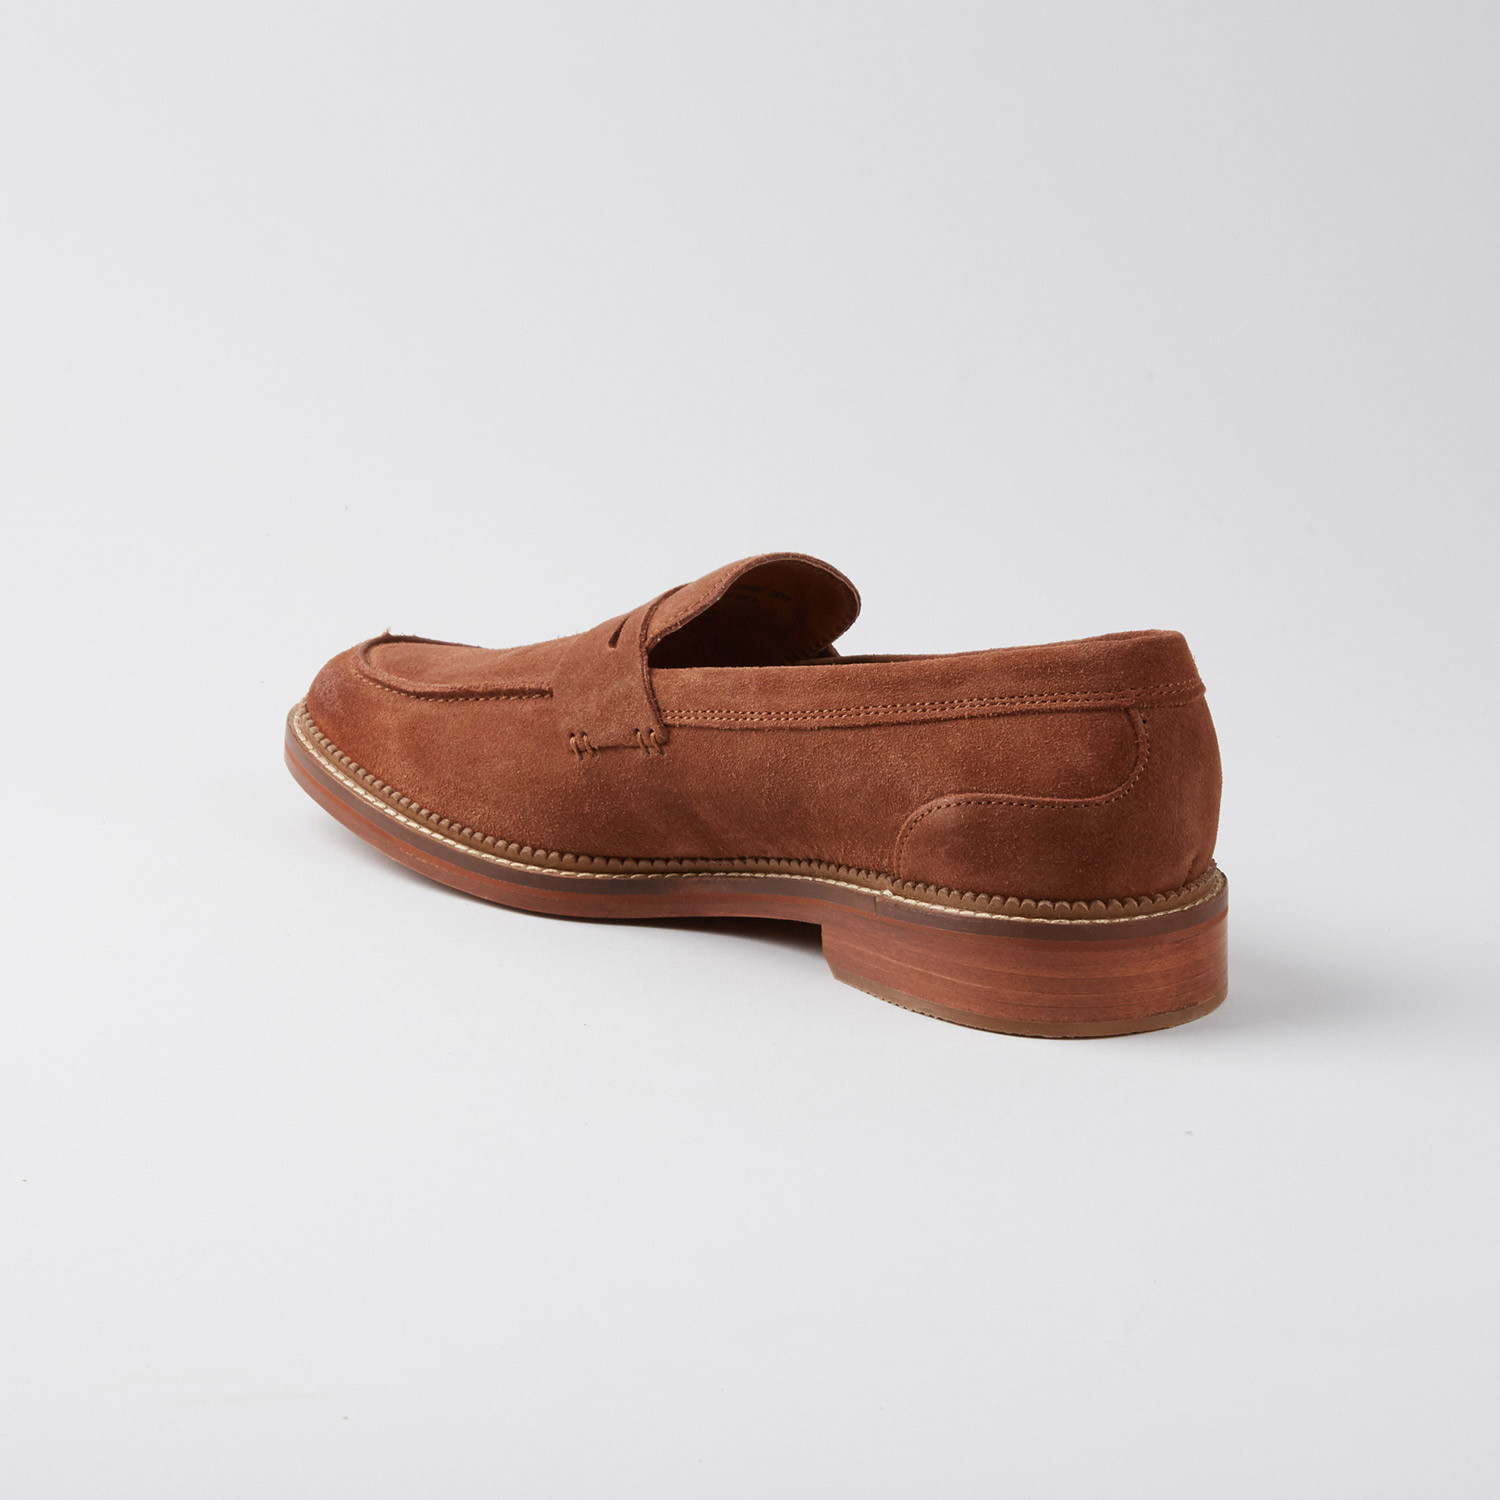 c2ca11051fe Ravenwood Penny Loafer    Brandy (US  8) - J SHOES - Touch of Modern